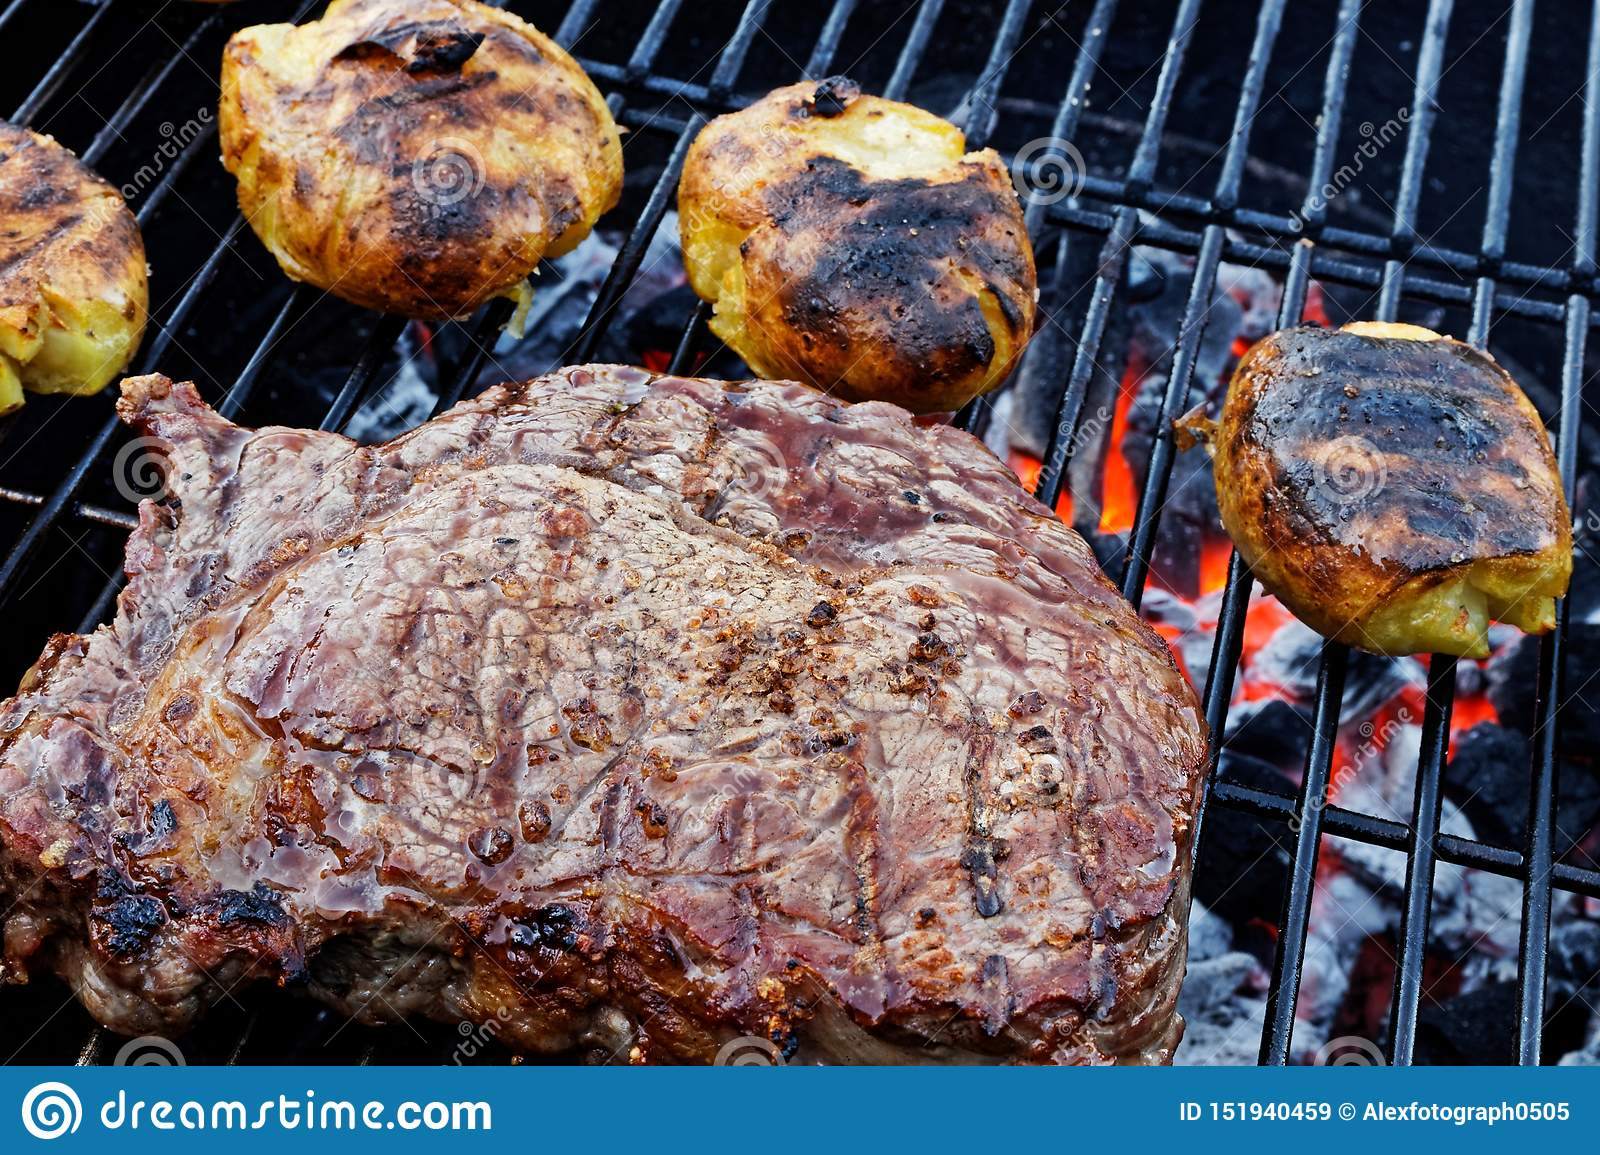 Big Rib Eye Steak And Smashed Potatoes On The Charcoal Grill Stock Image Image Of Meat Potatoes 151940459